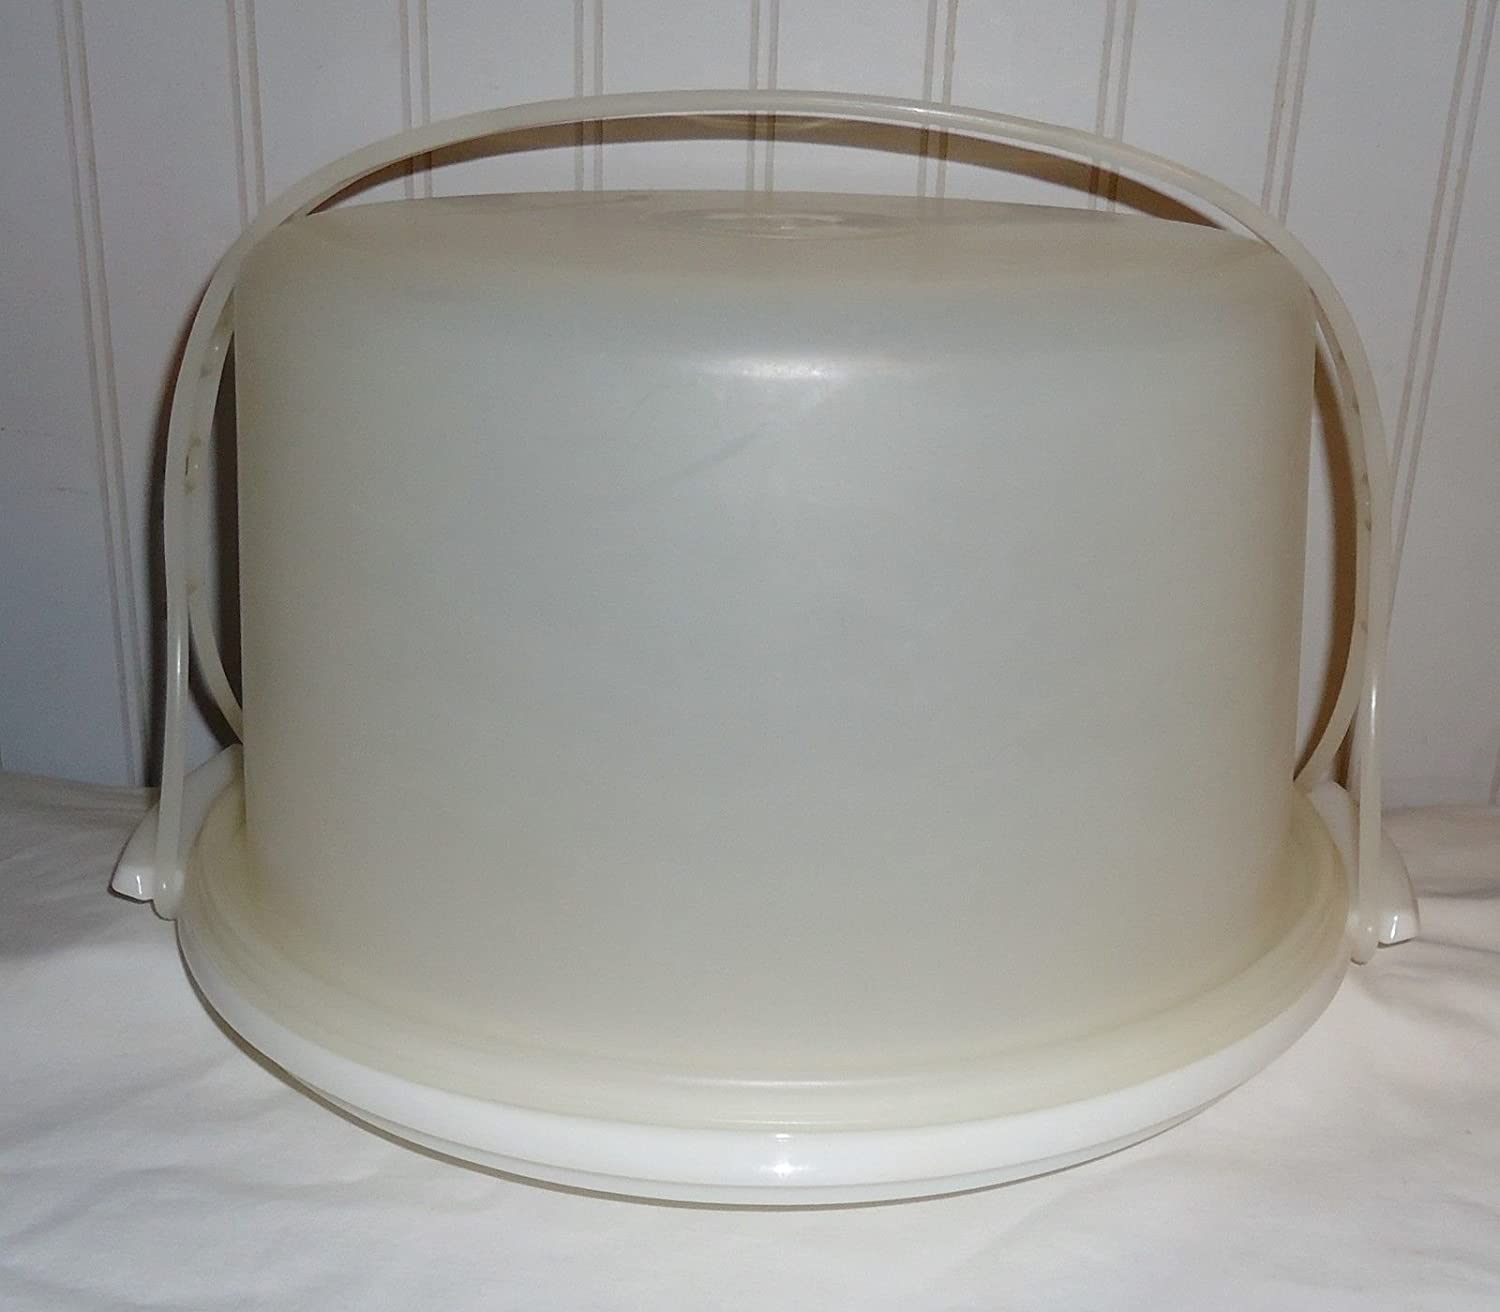 Vintage Round Tupperware Cake Server Carrier White Base with Carrying Handle 684-1 683-1